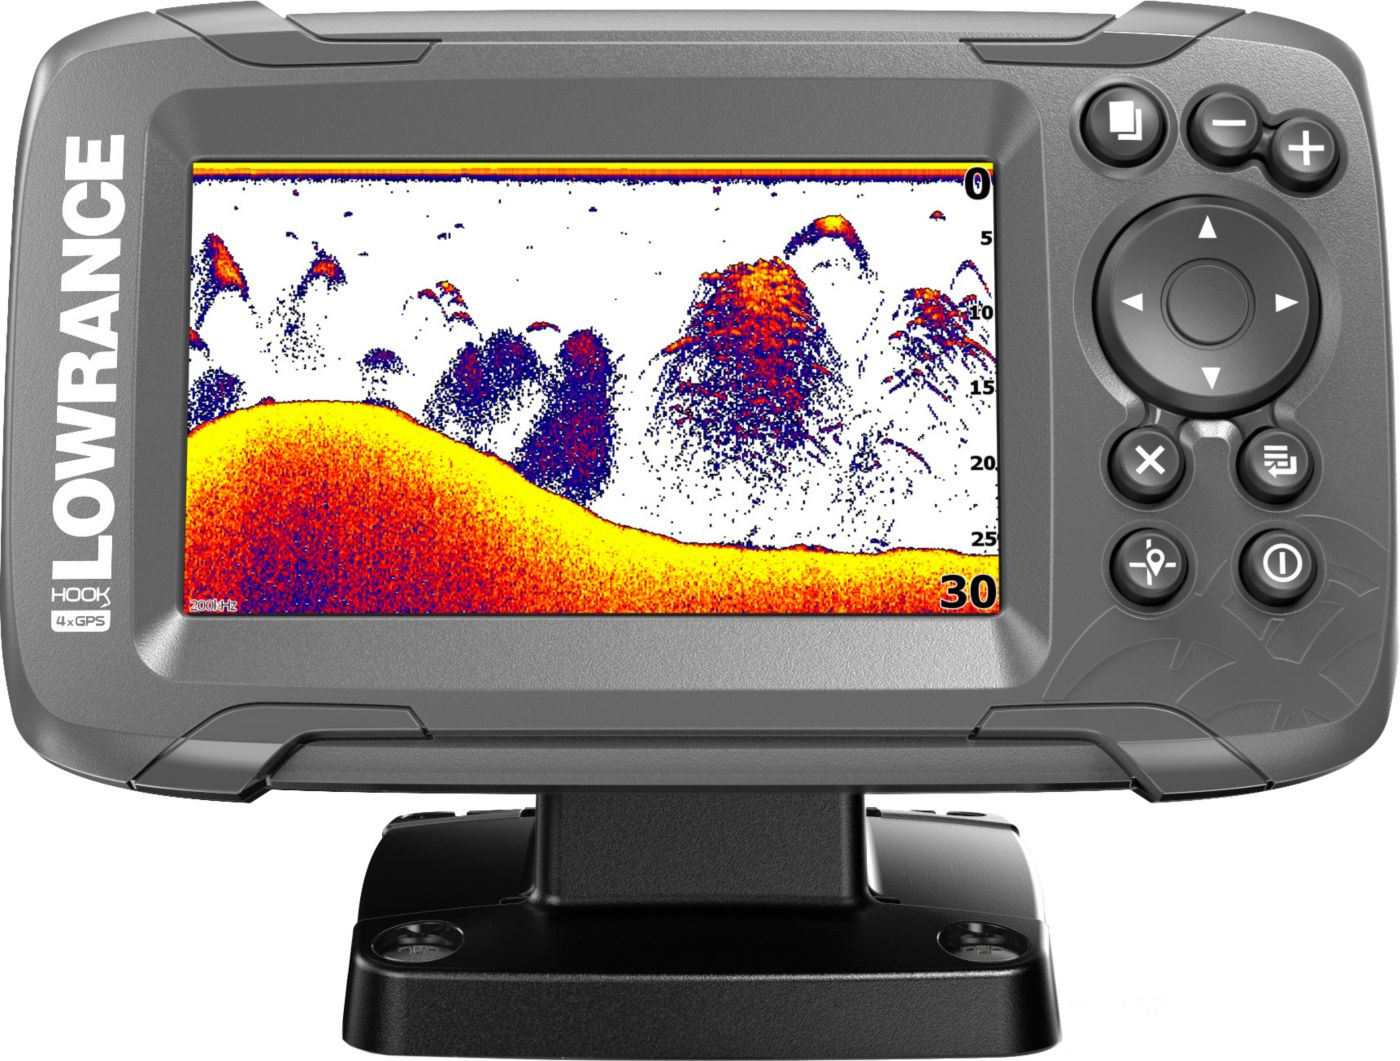 Lowrance HOOK2-4x GPS Fish Finder with Bullet Transducer